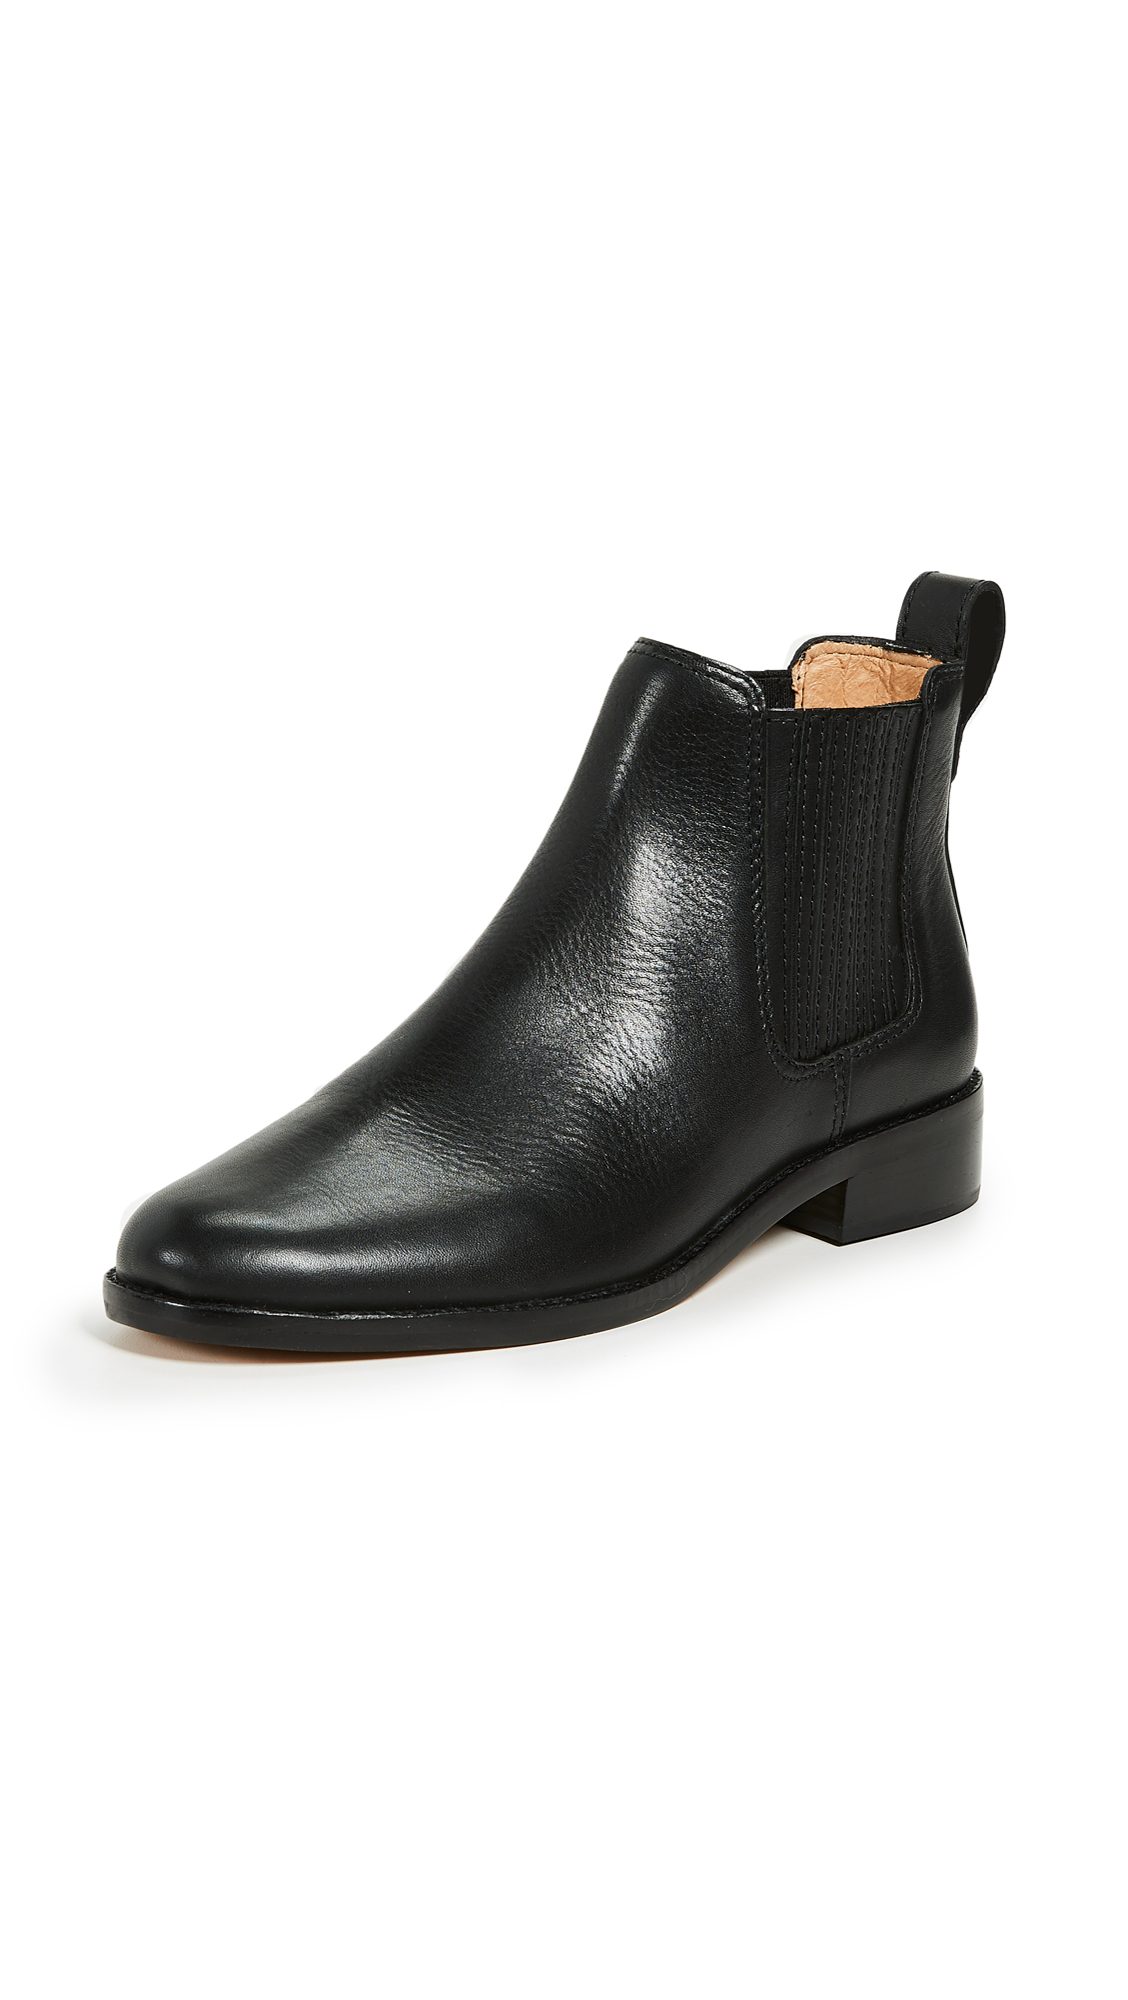 Madewell The Ainsley Chelsea Boots - True Black